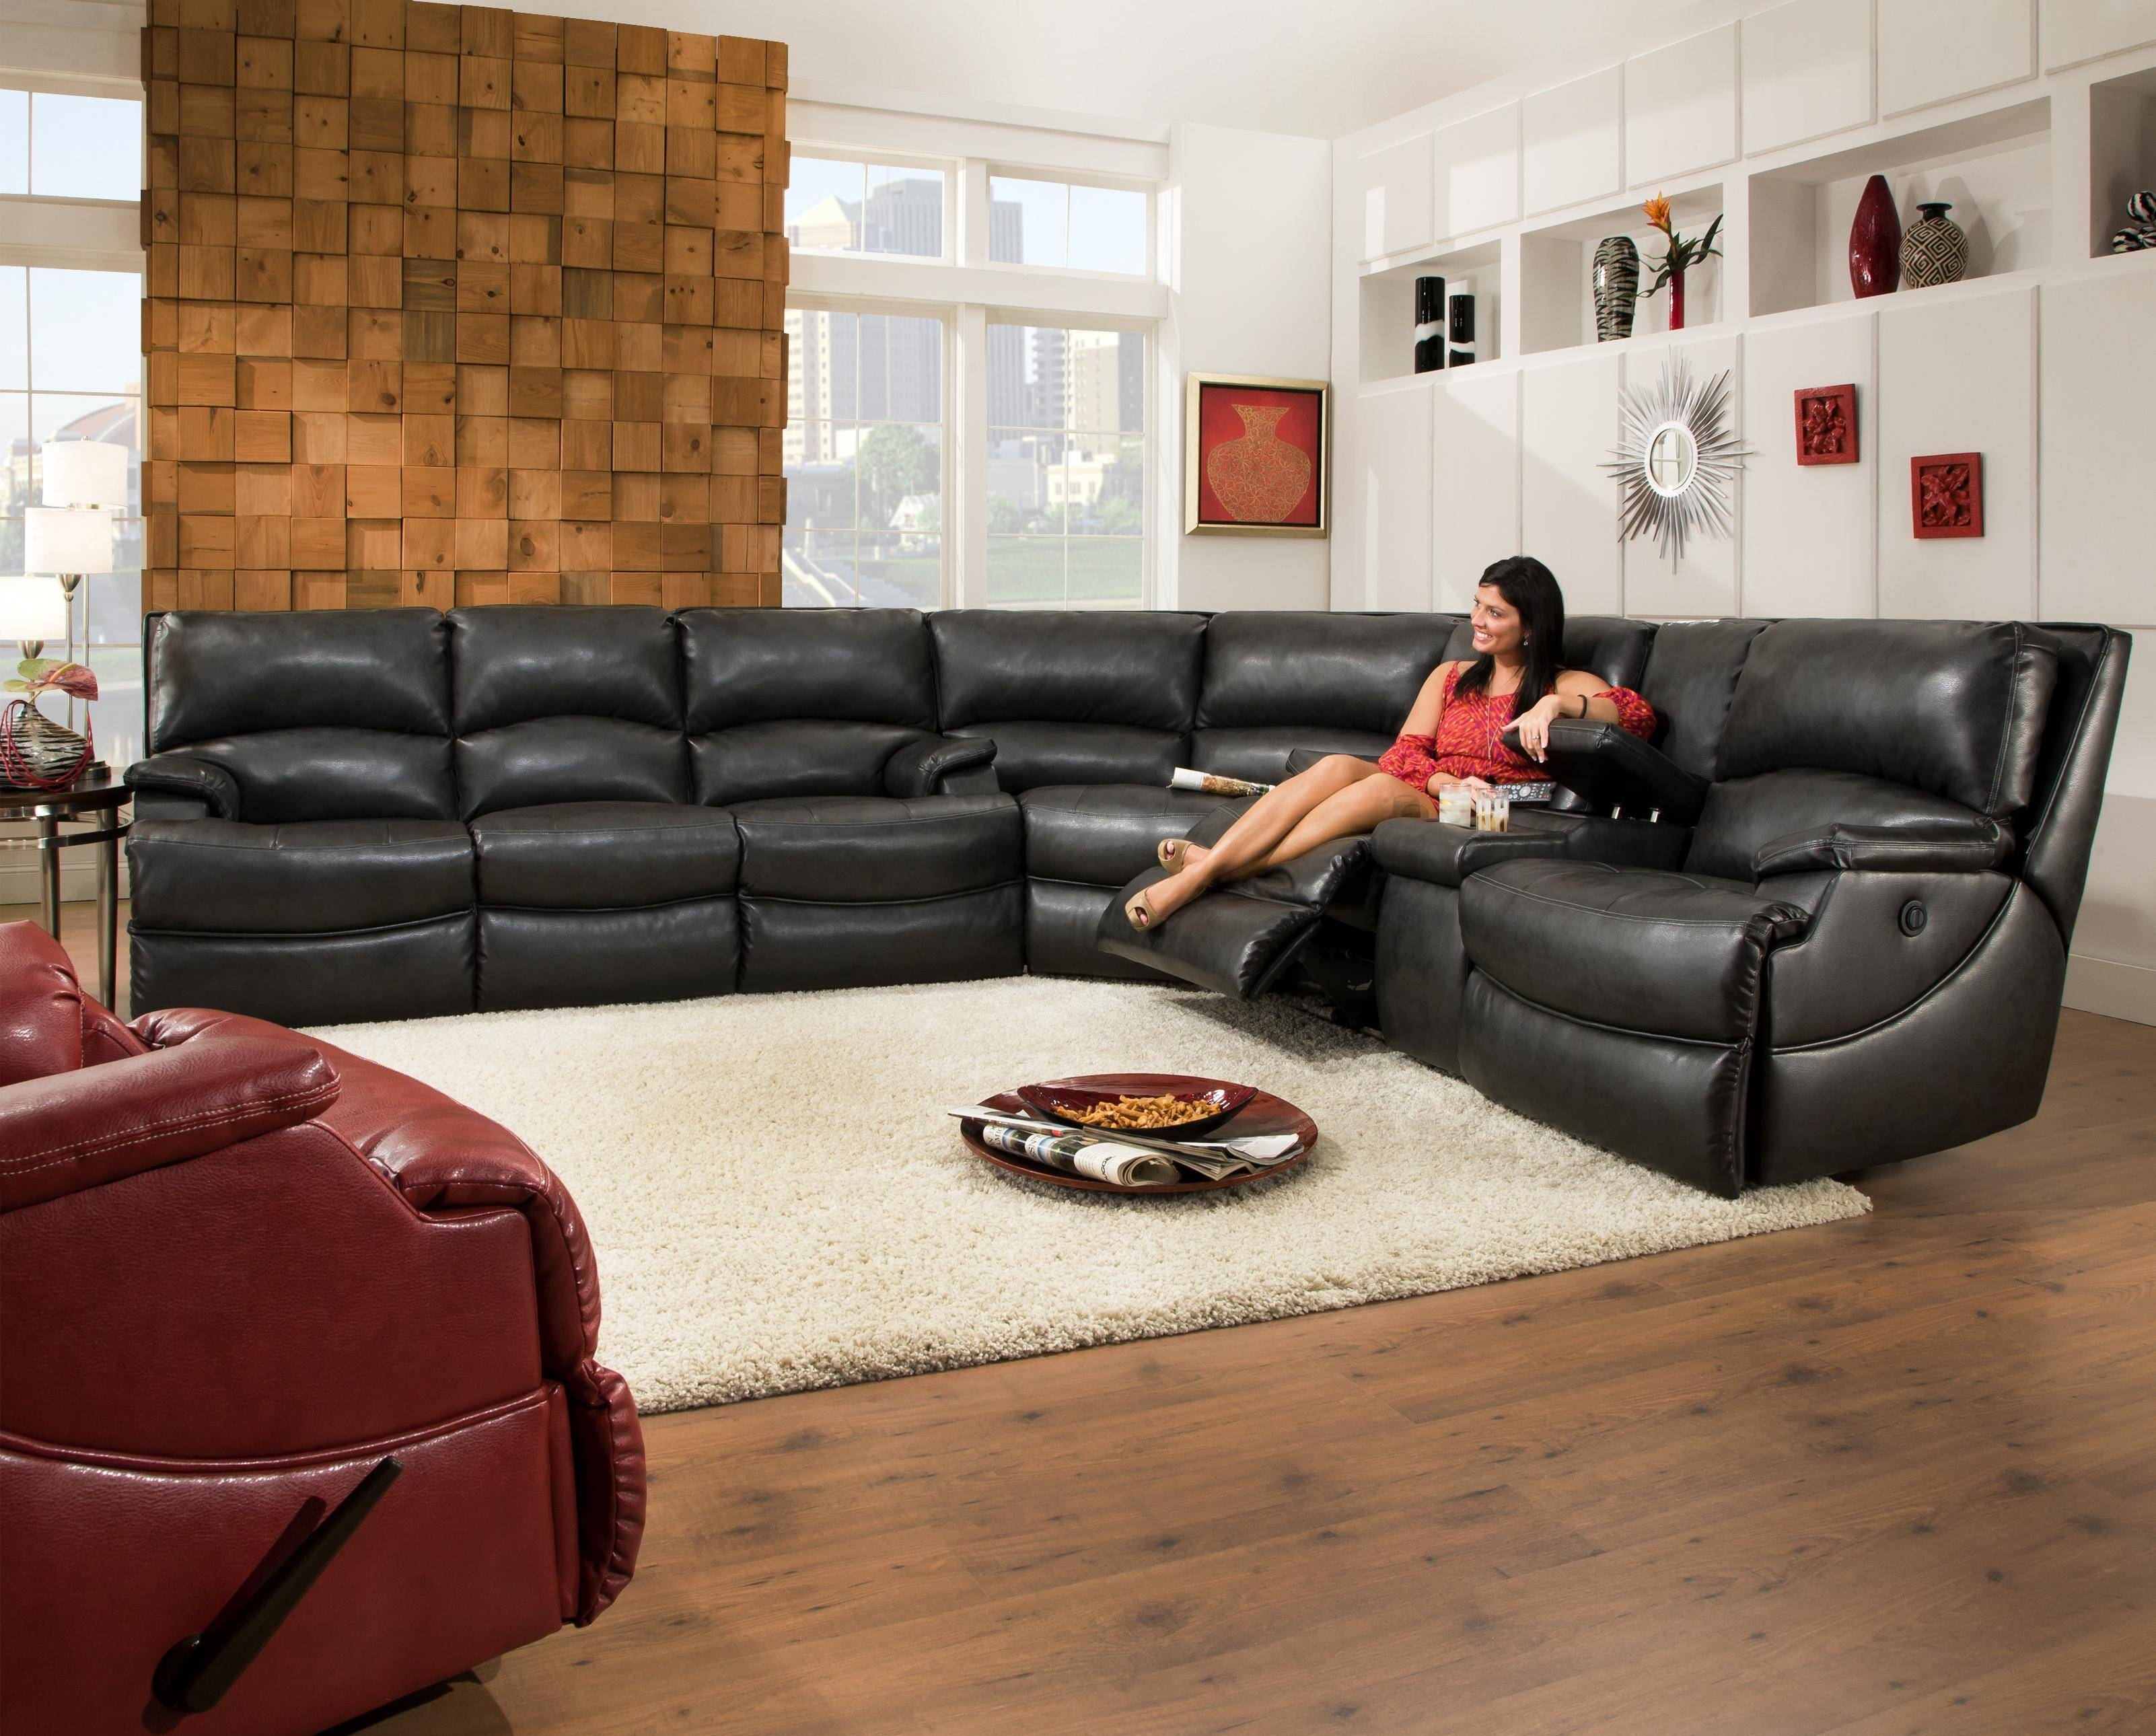 Sectional Sofa Design : Wide Drawer Large Square Brown Portable within Wide Seat Sectional Sofas (Image 21 of 25)